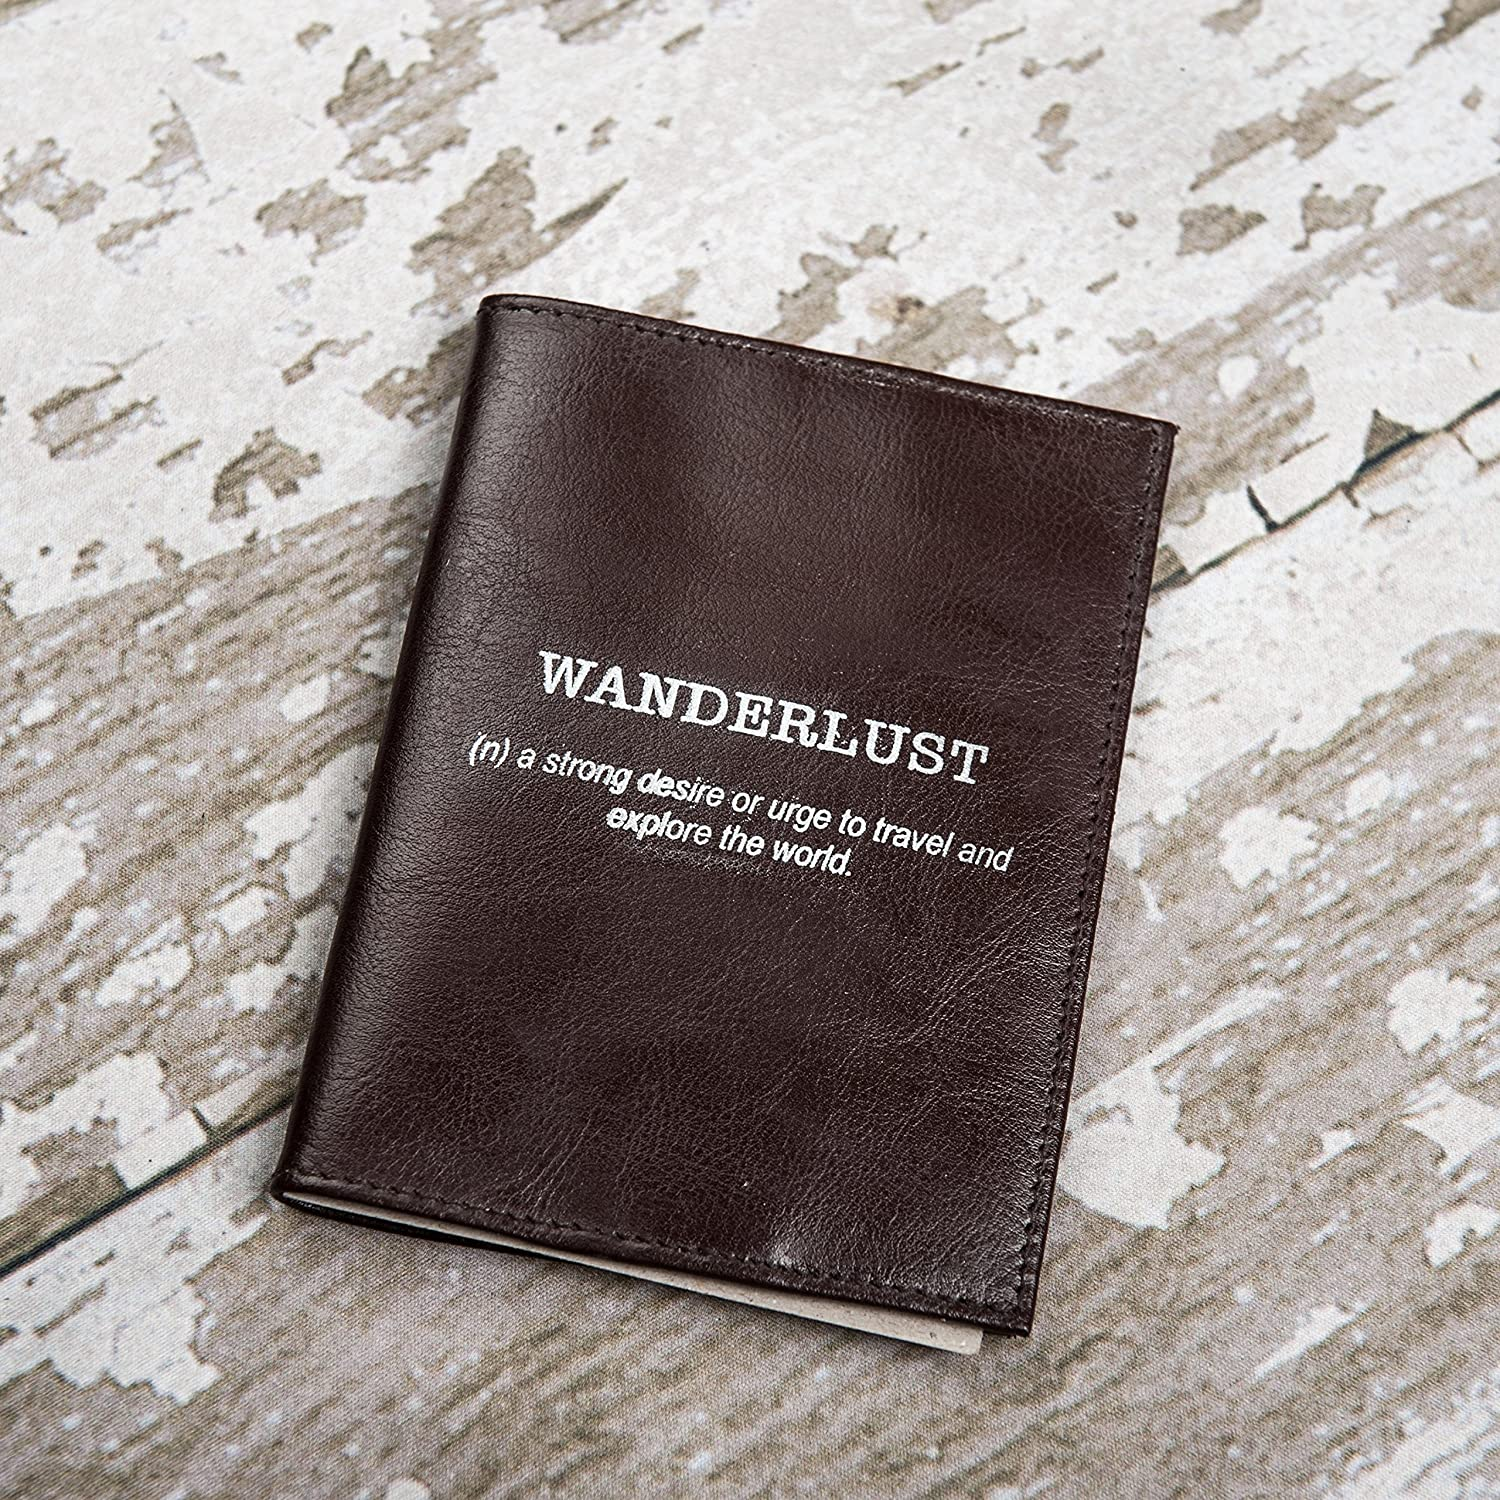 Wanderlust Genuine Leather Passport Cover, Travel Accessories, Travel Wallet, Genuine Leather case cover - Securely Holds Passport, Business Cards, Credit Cards, Boarding Passes